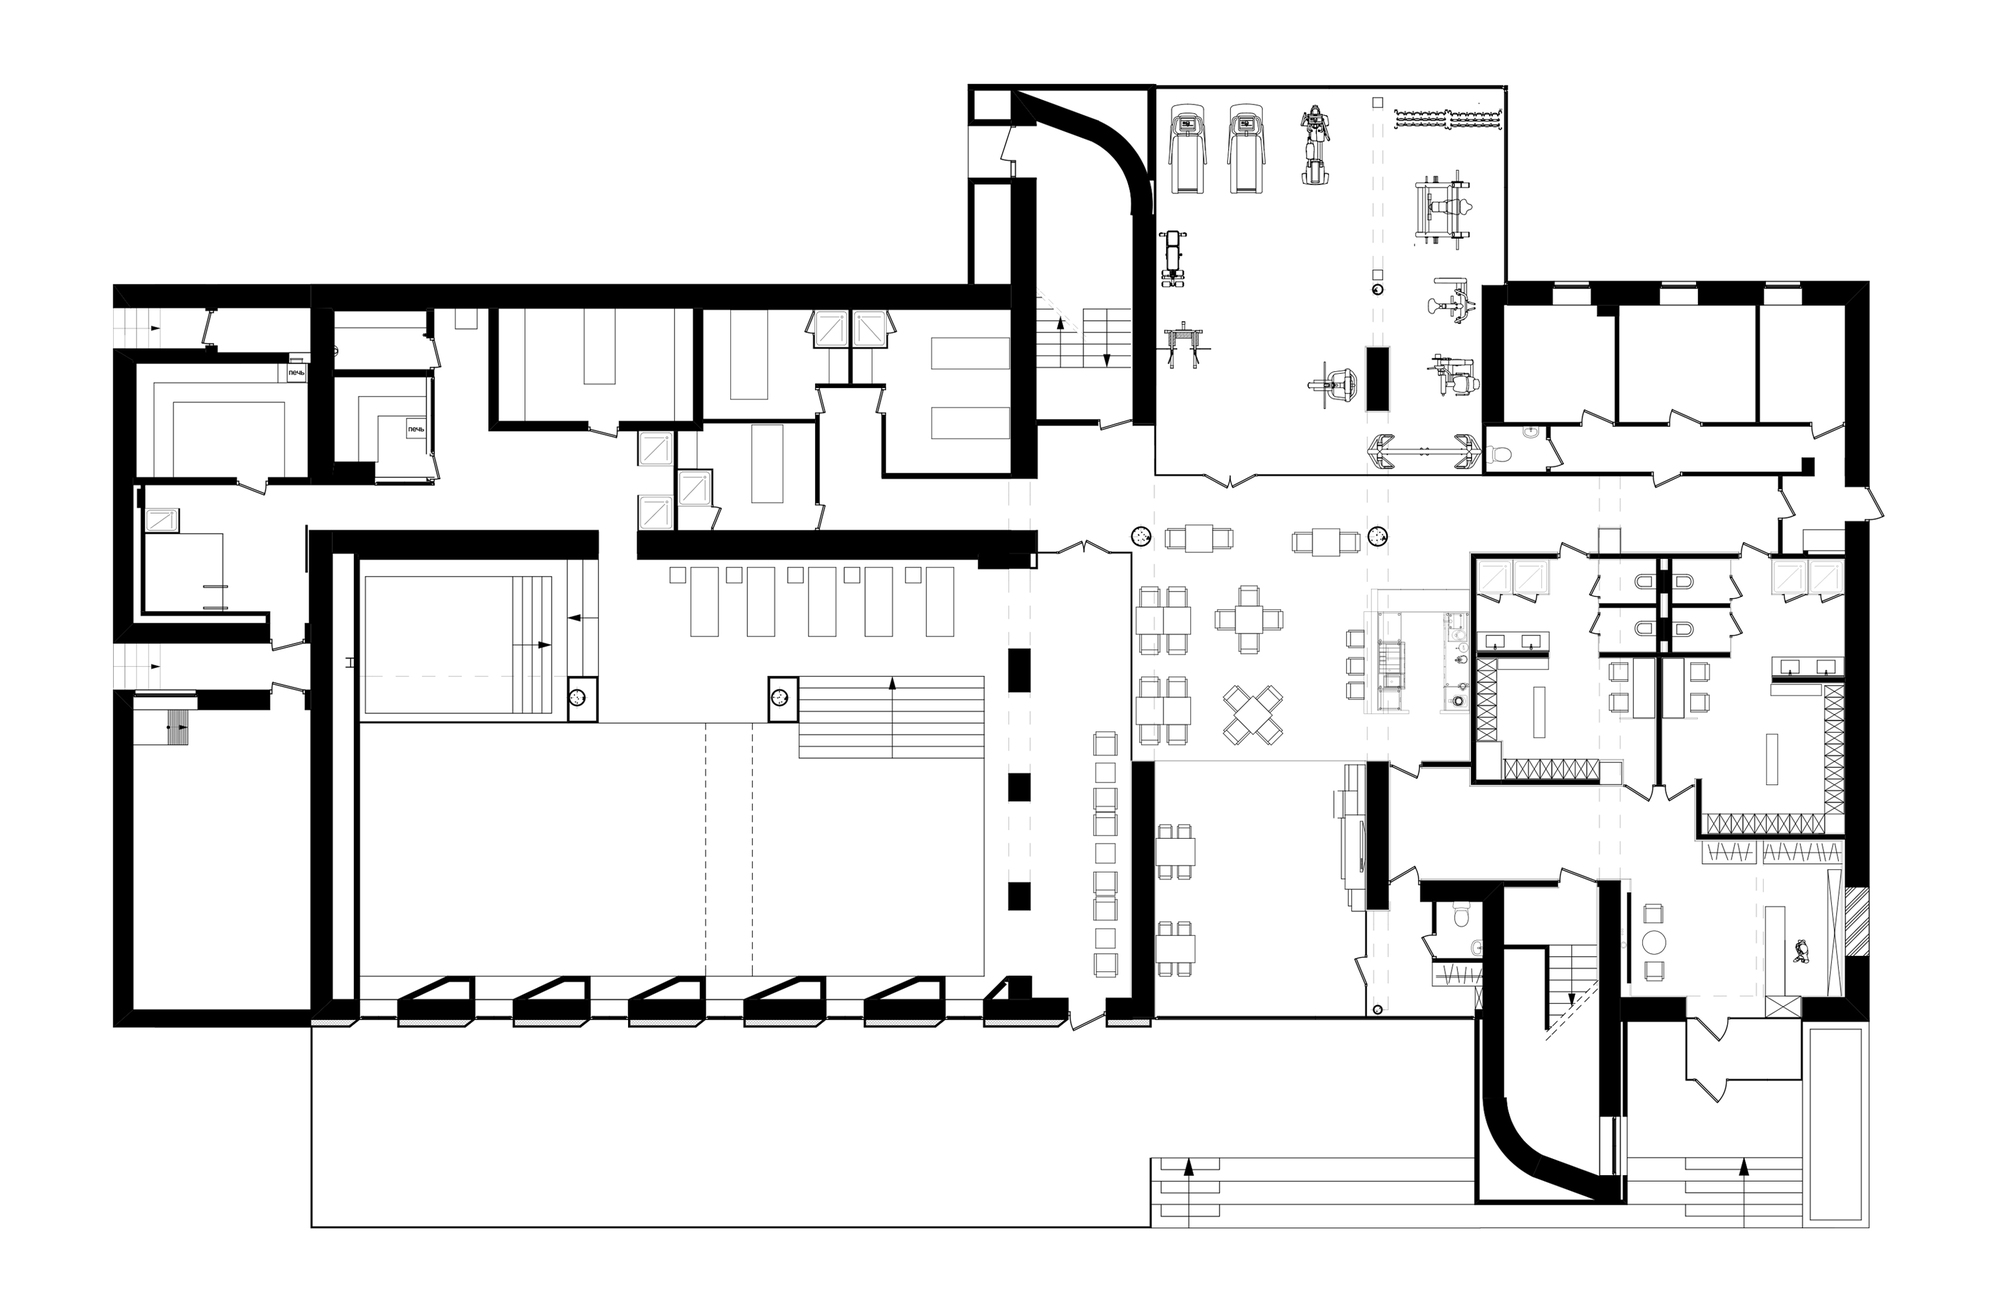 Gallery of spa in relax park verholy yod studio 14 for Salon layout plans